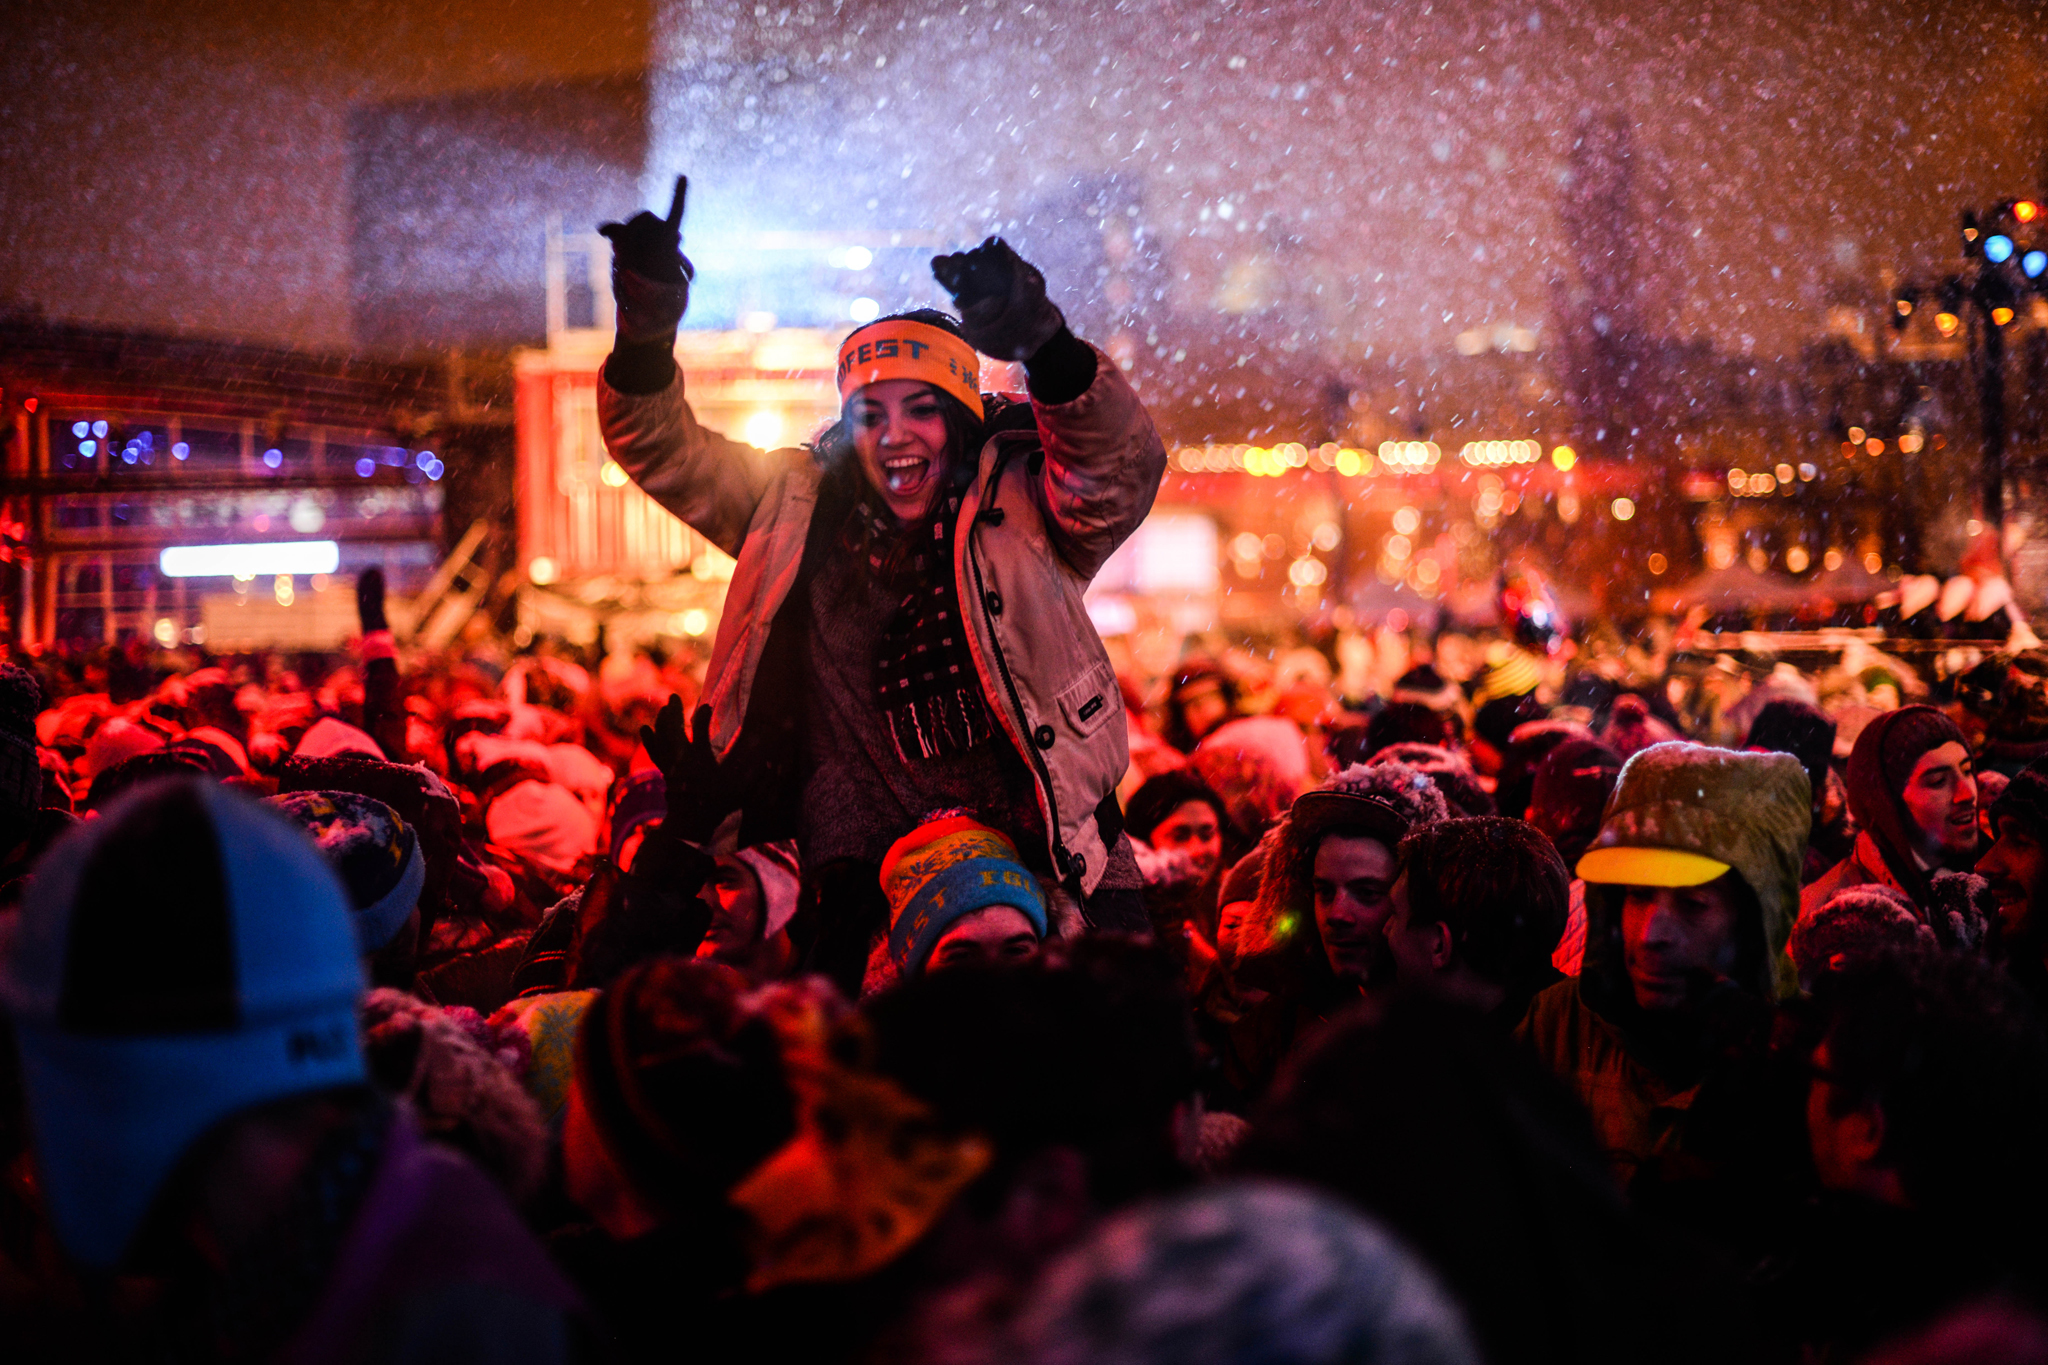 Photos and interviews: Montreal's Igloofest